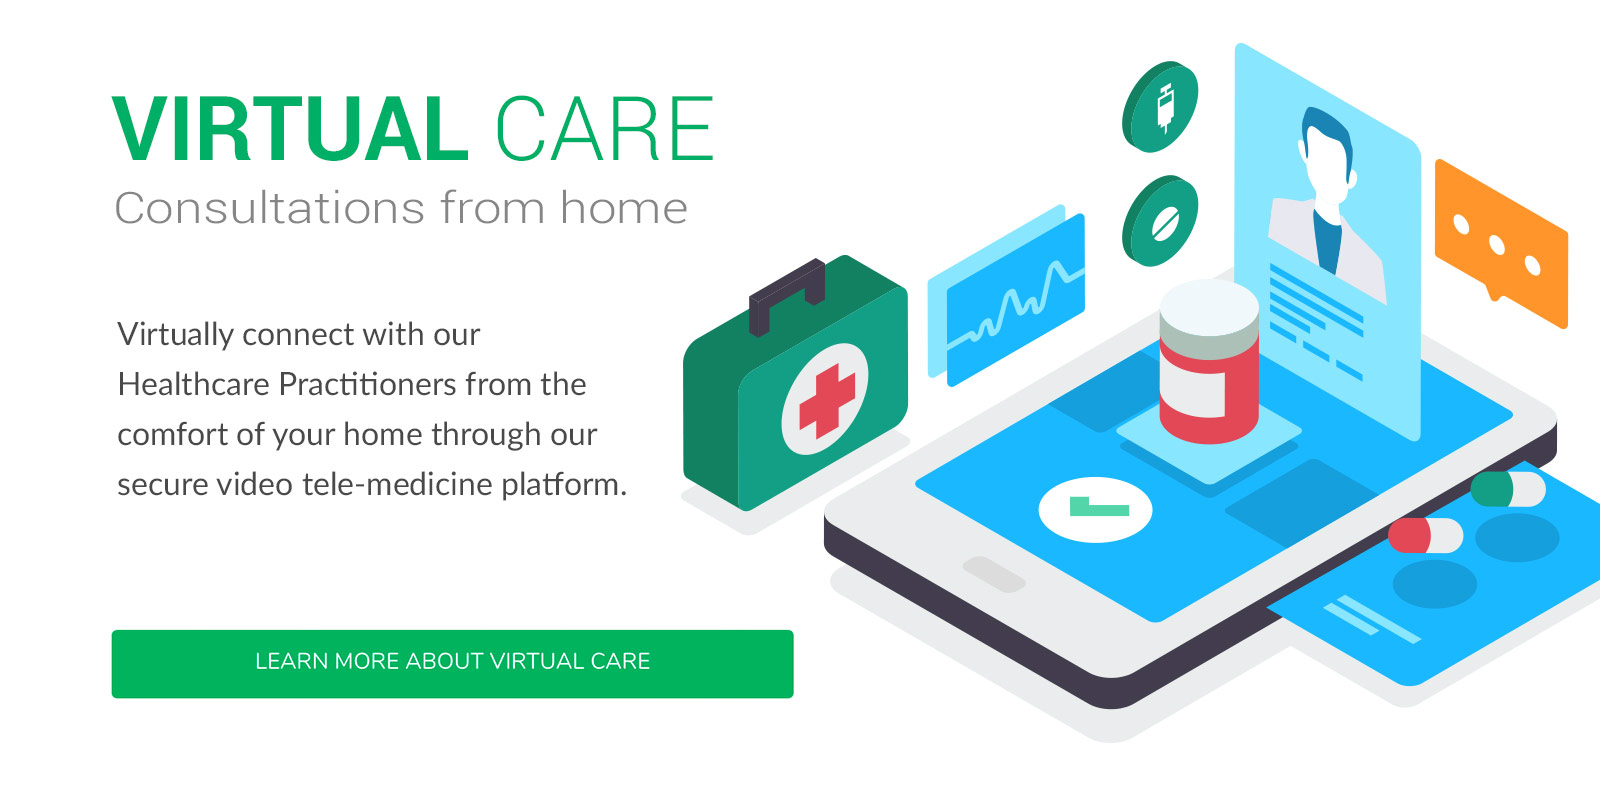 Ontario virtual care medical cannabis